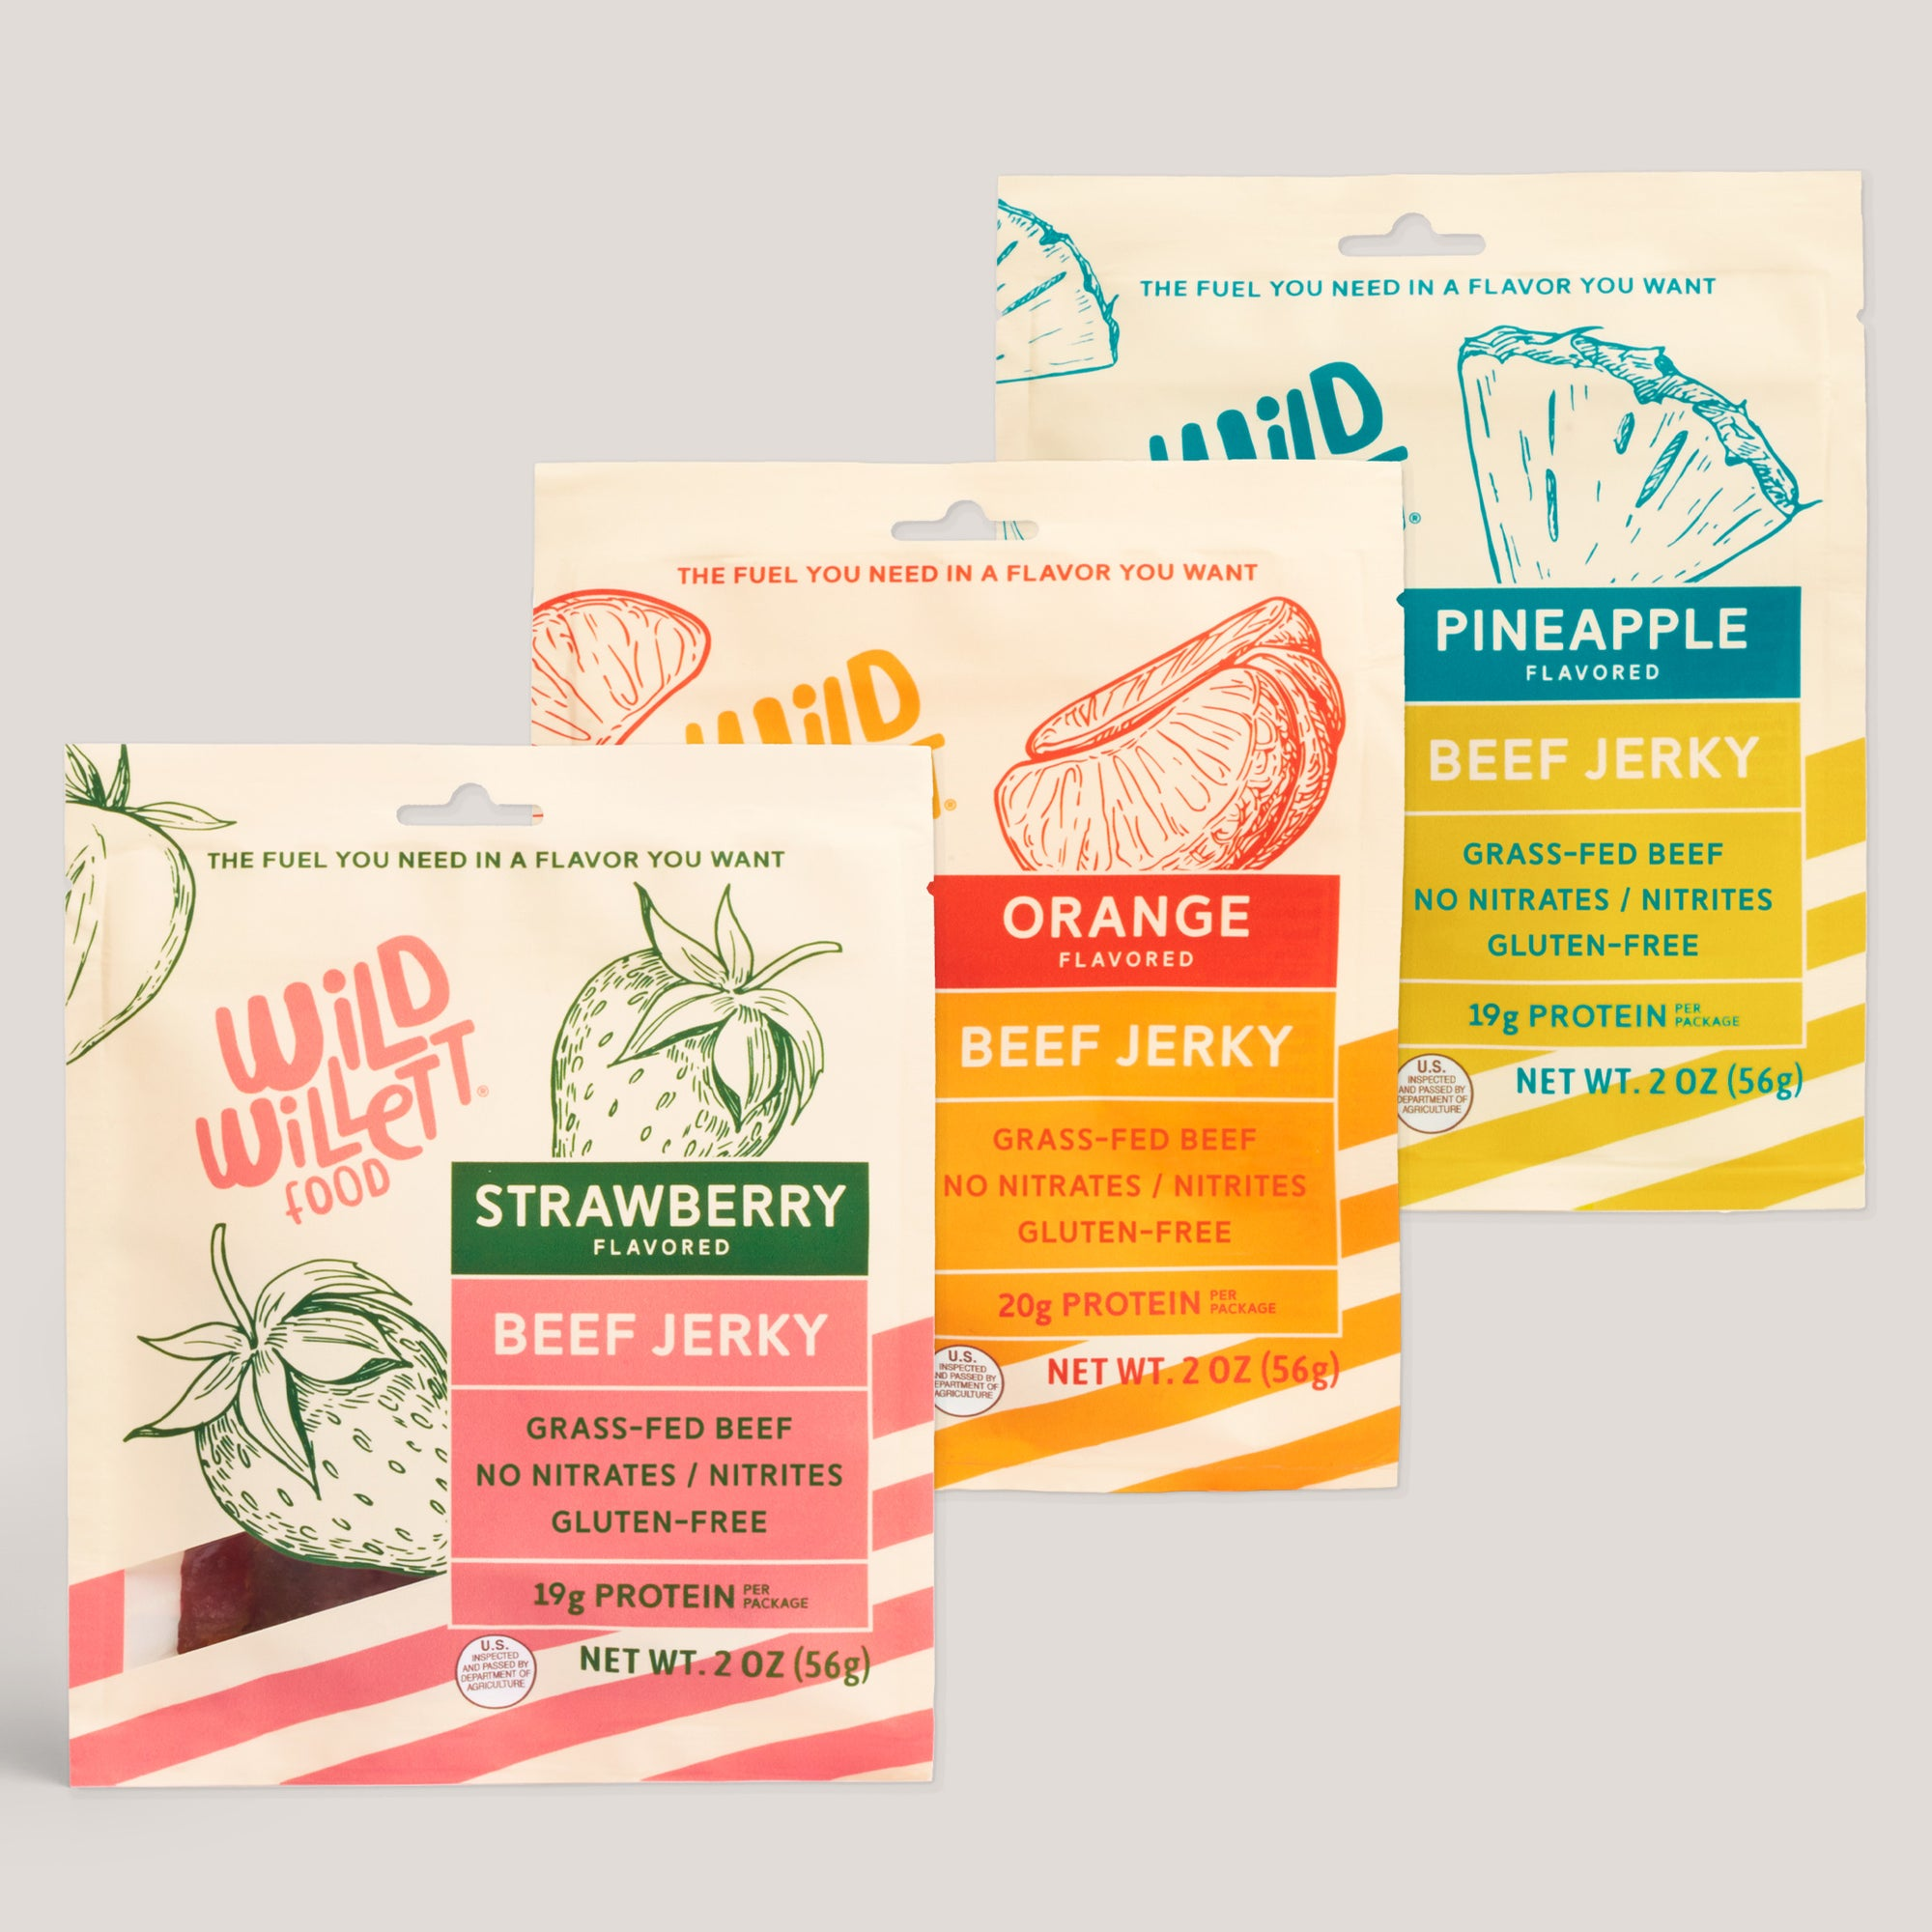 Wild Willett Variety Pack Grass-Fed Beef Jerky